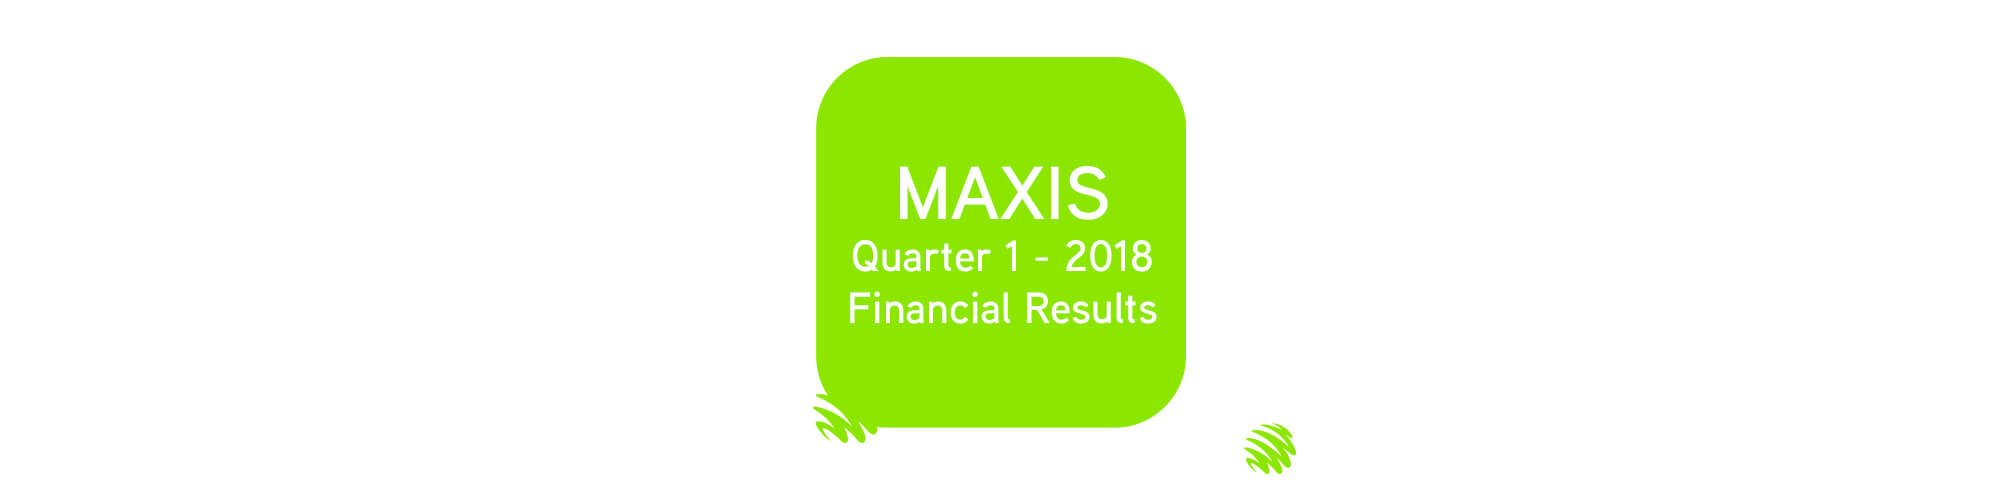 Maxis Q1 Financial Results